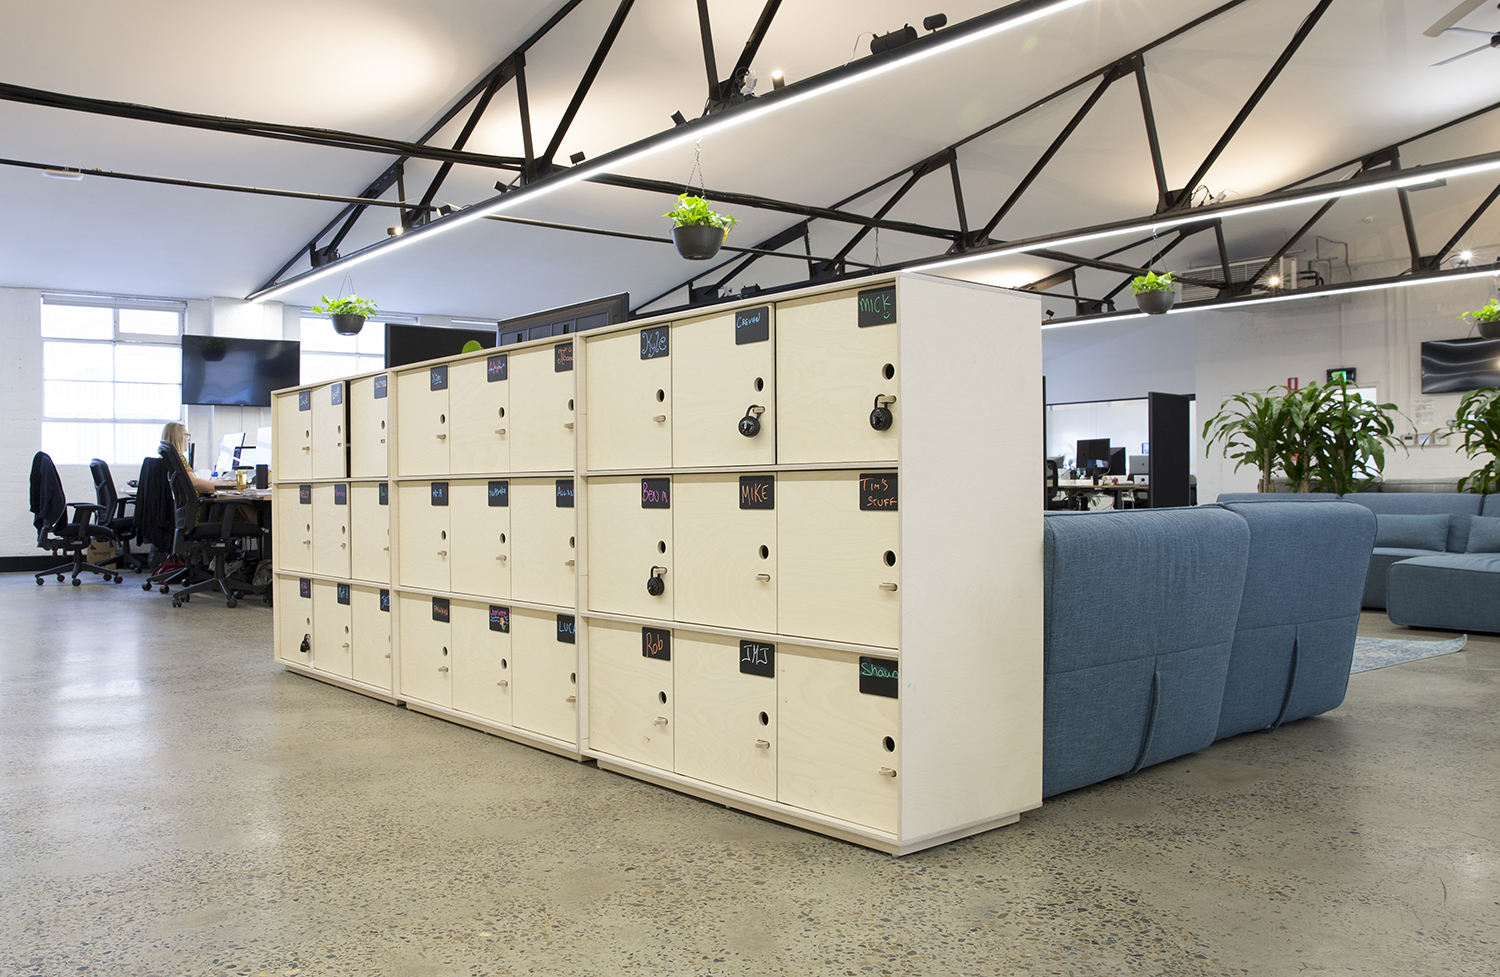 SoWatt-The-Bold-Collective-Safety-Culture-Plywood-Lockers-SamKirby-19 copy.jpg